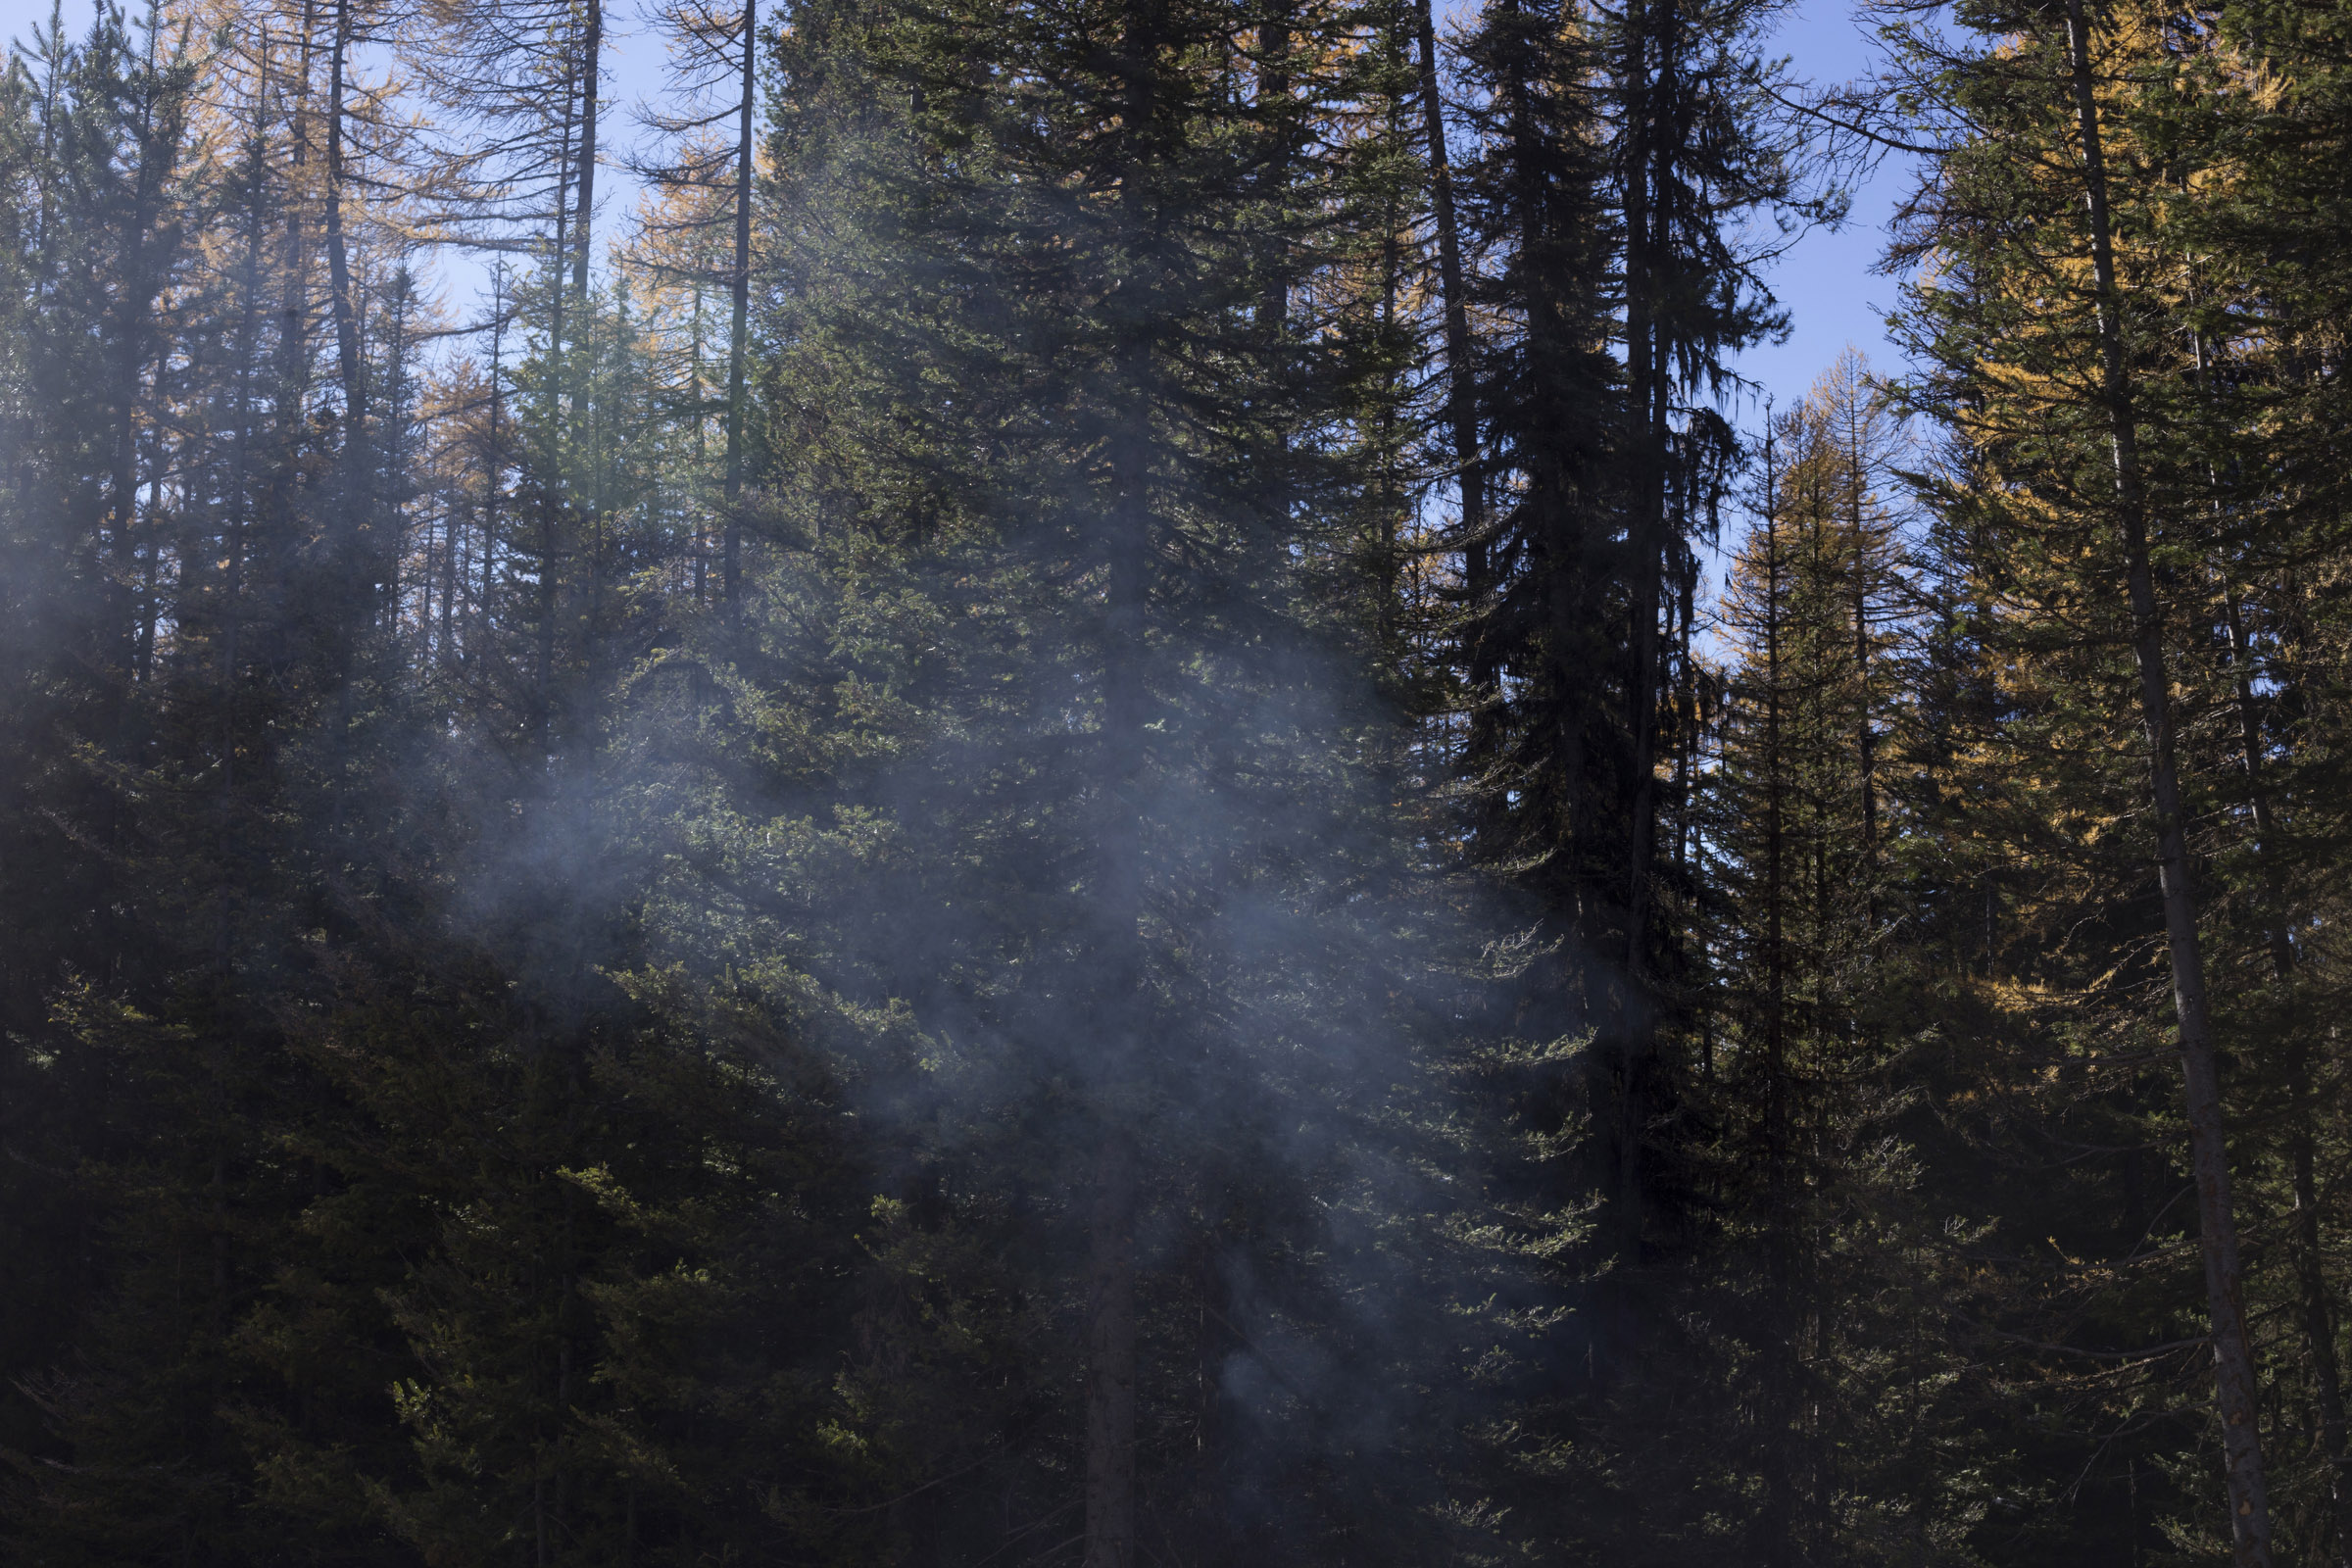 Smoke rises from a smoldering fire in the forest outside of Seeley Lake, Montana, on Thursday, October 29, 2017. (Photo by Brittany Greeson)